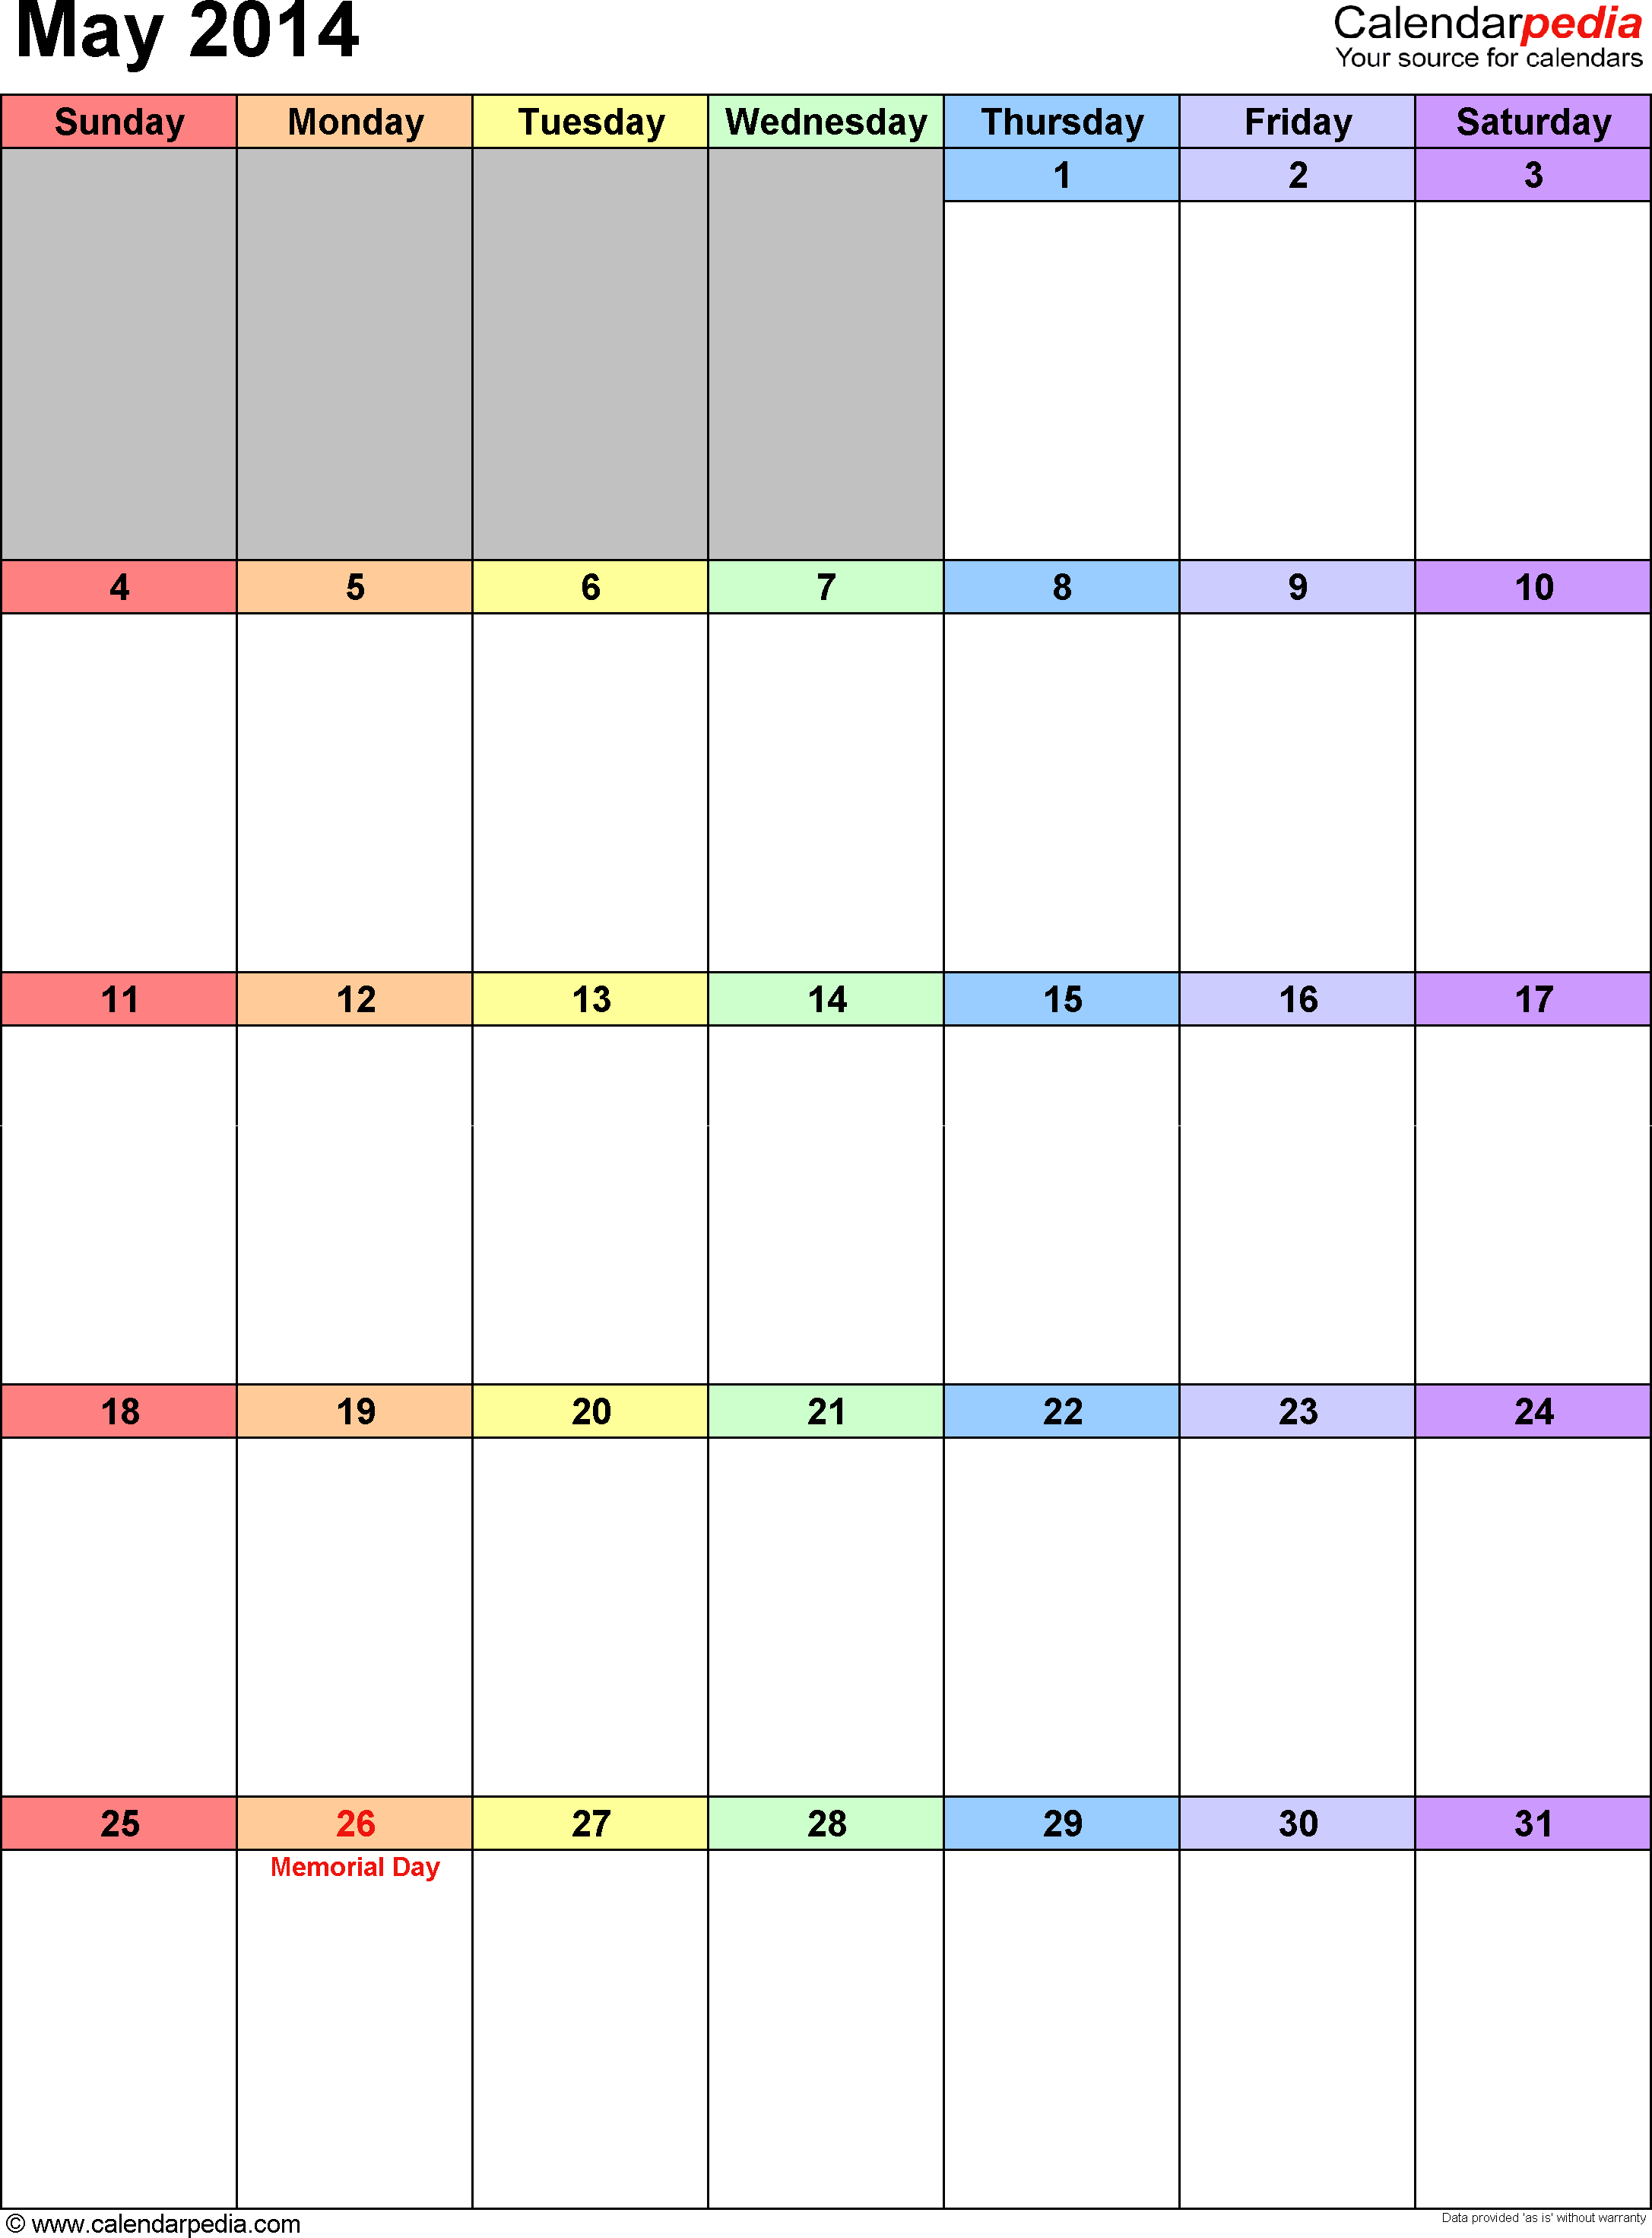 May 2014 calendar as printable Word, Excel & PDF templates